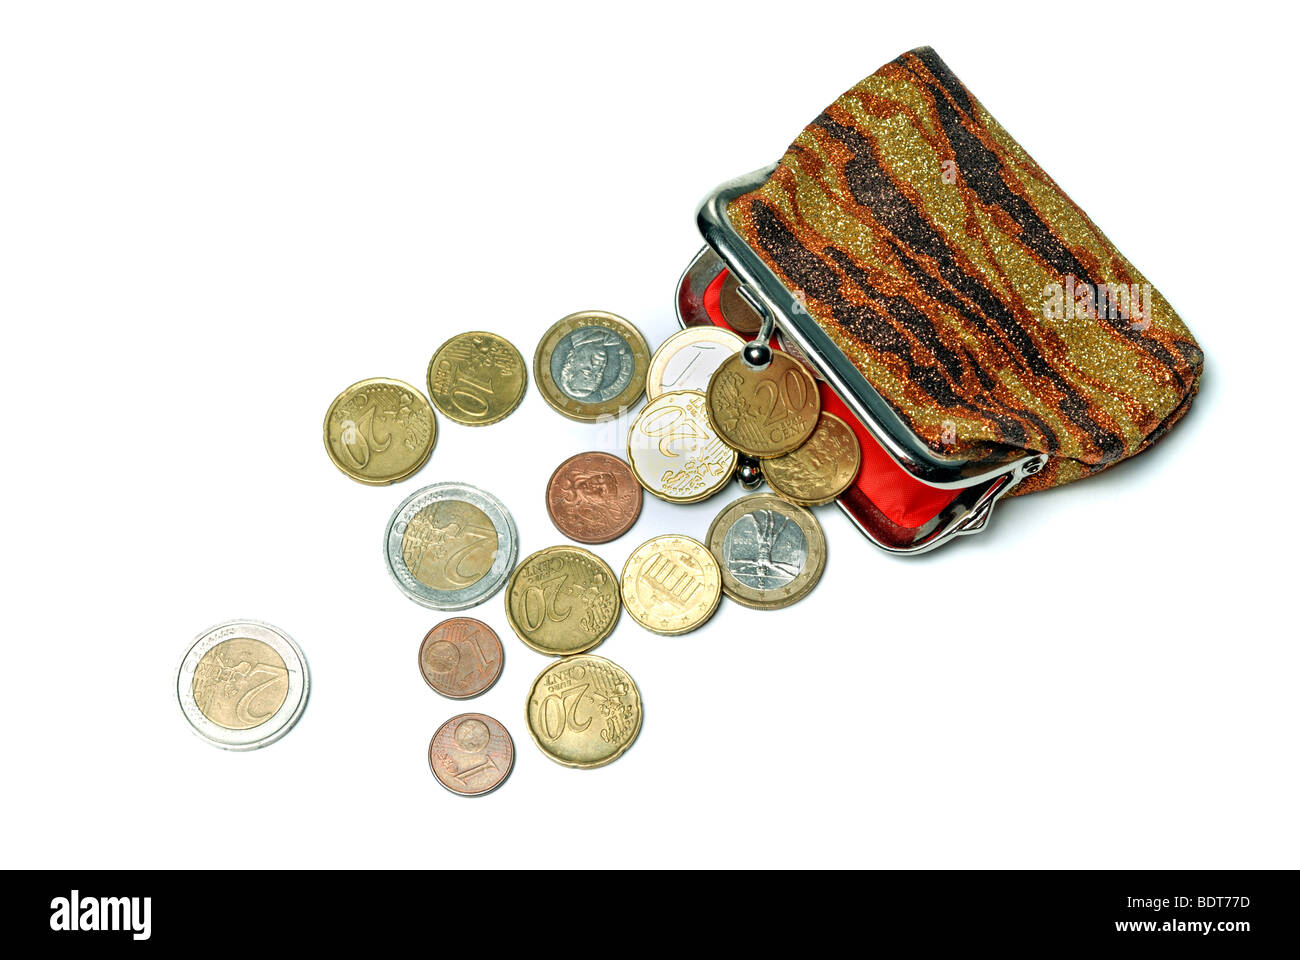 Purse and euro coins isolated on white background - Stock Image